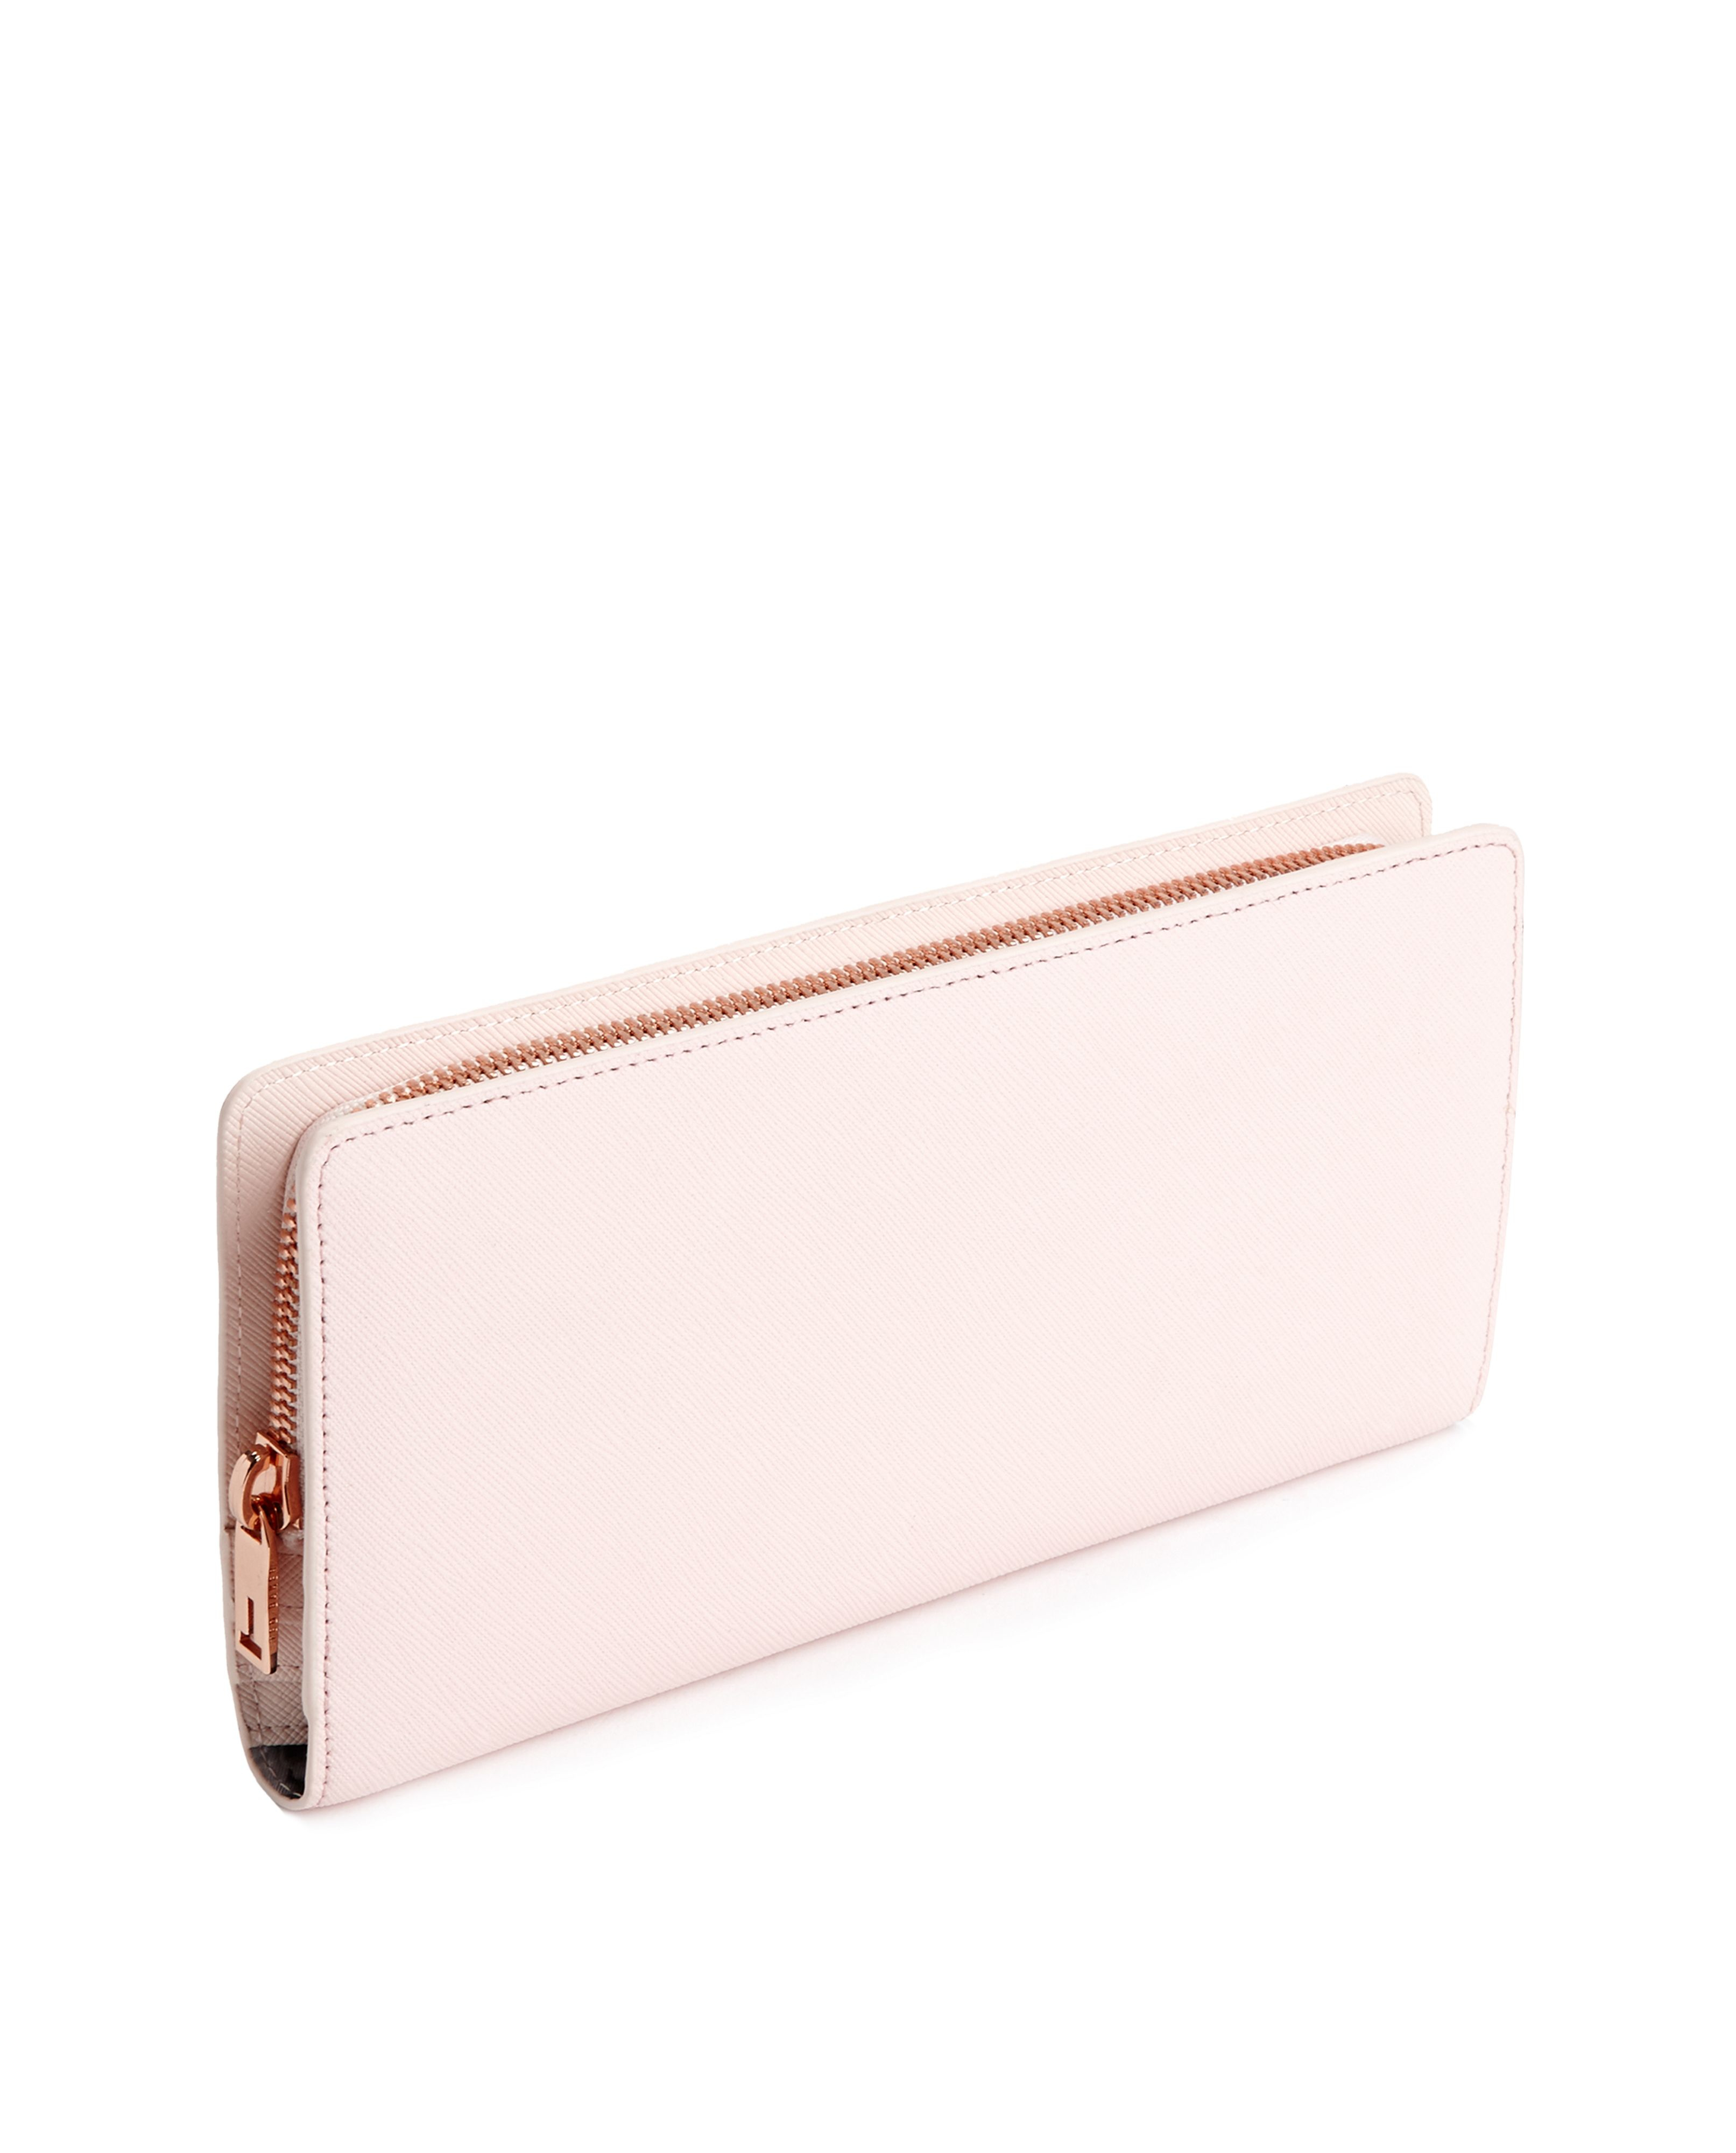 d93230aa19cf8c Ted Baker Matinee Wallet - Best Photo Wallet Justiceforkenny.Org